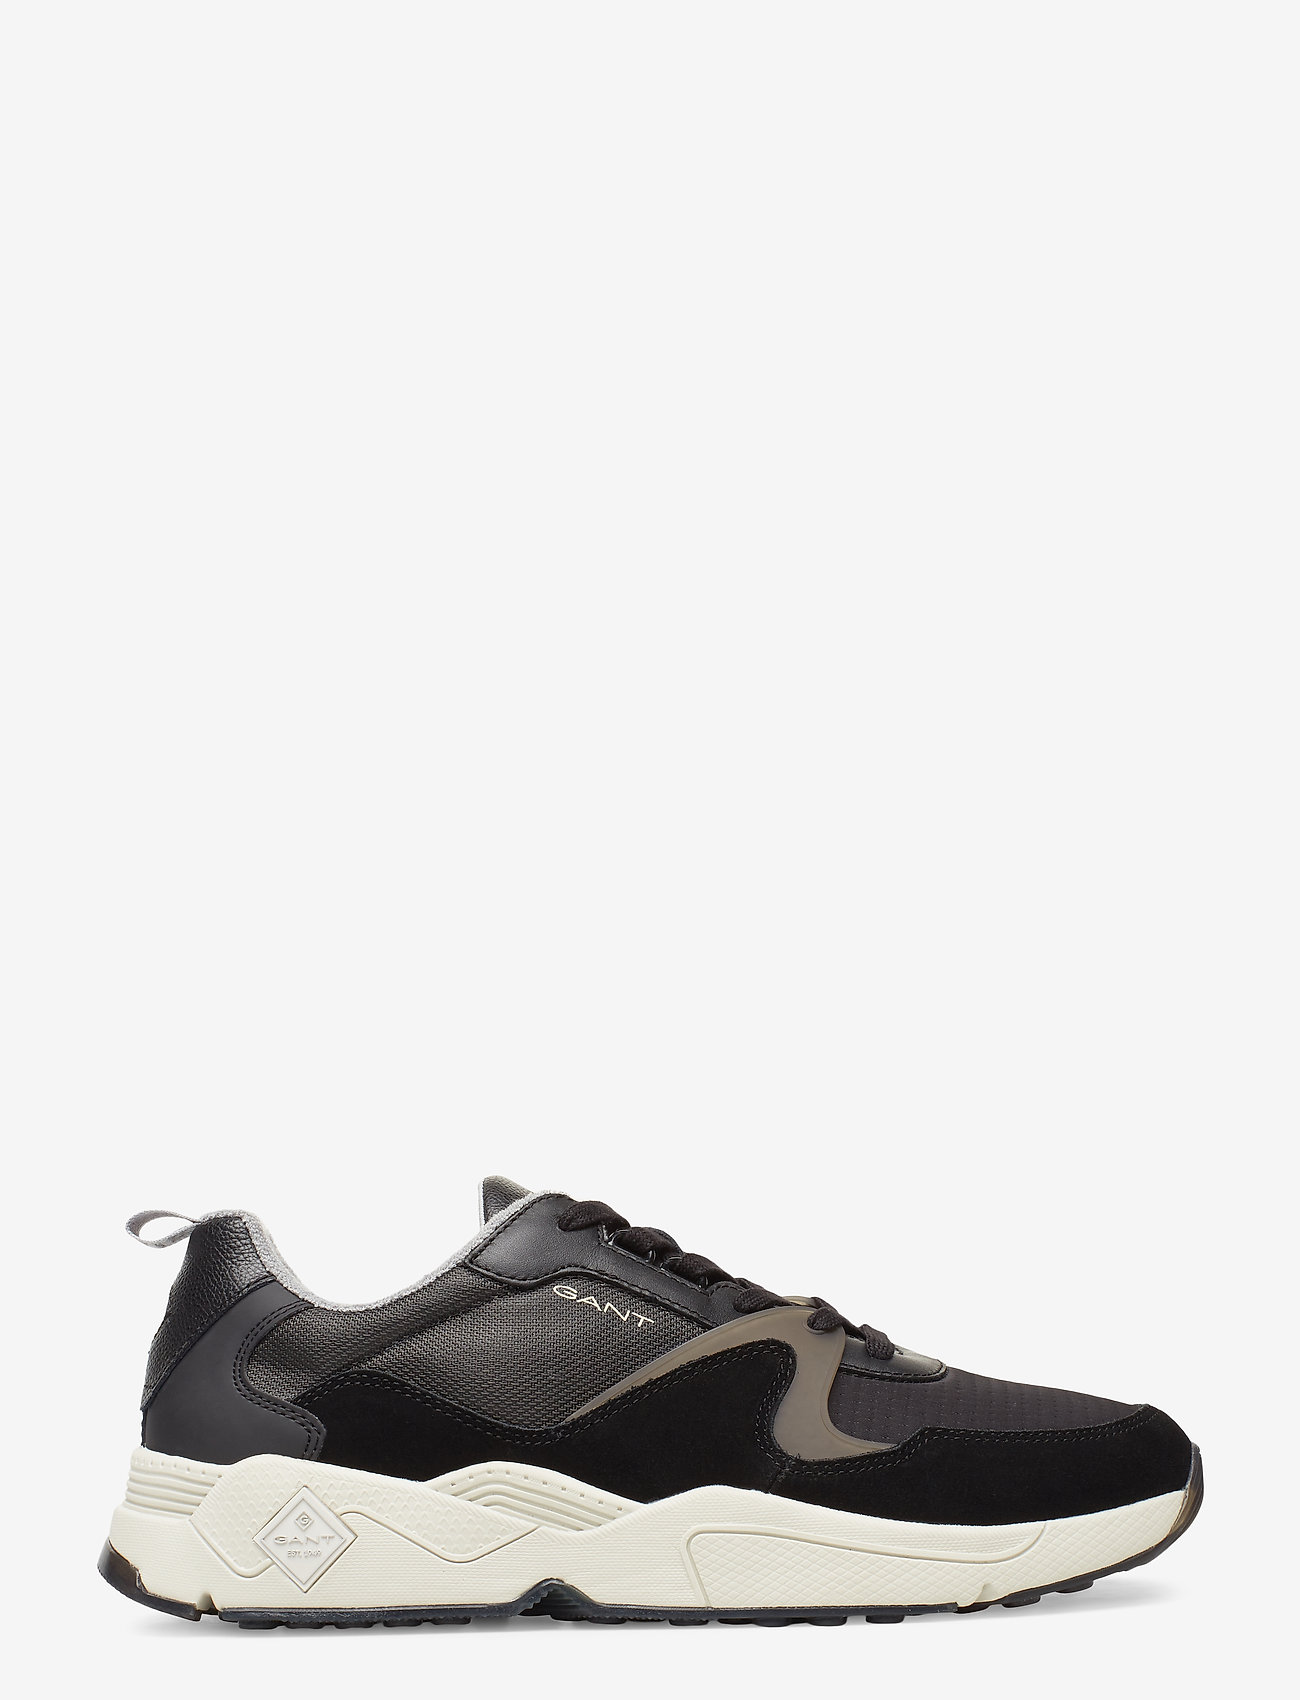 GANT - Nicewill Running low - low tops - black - 1